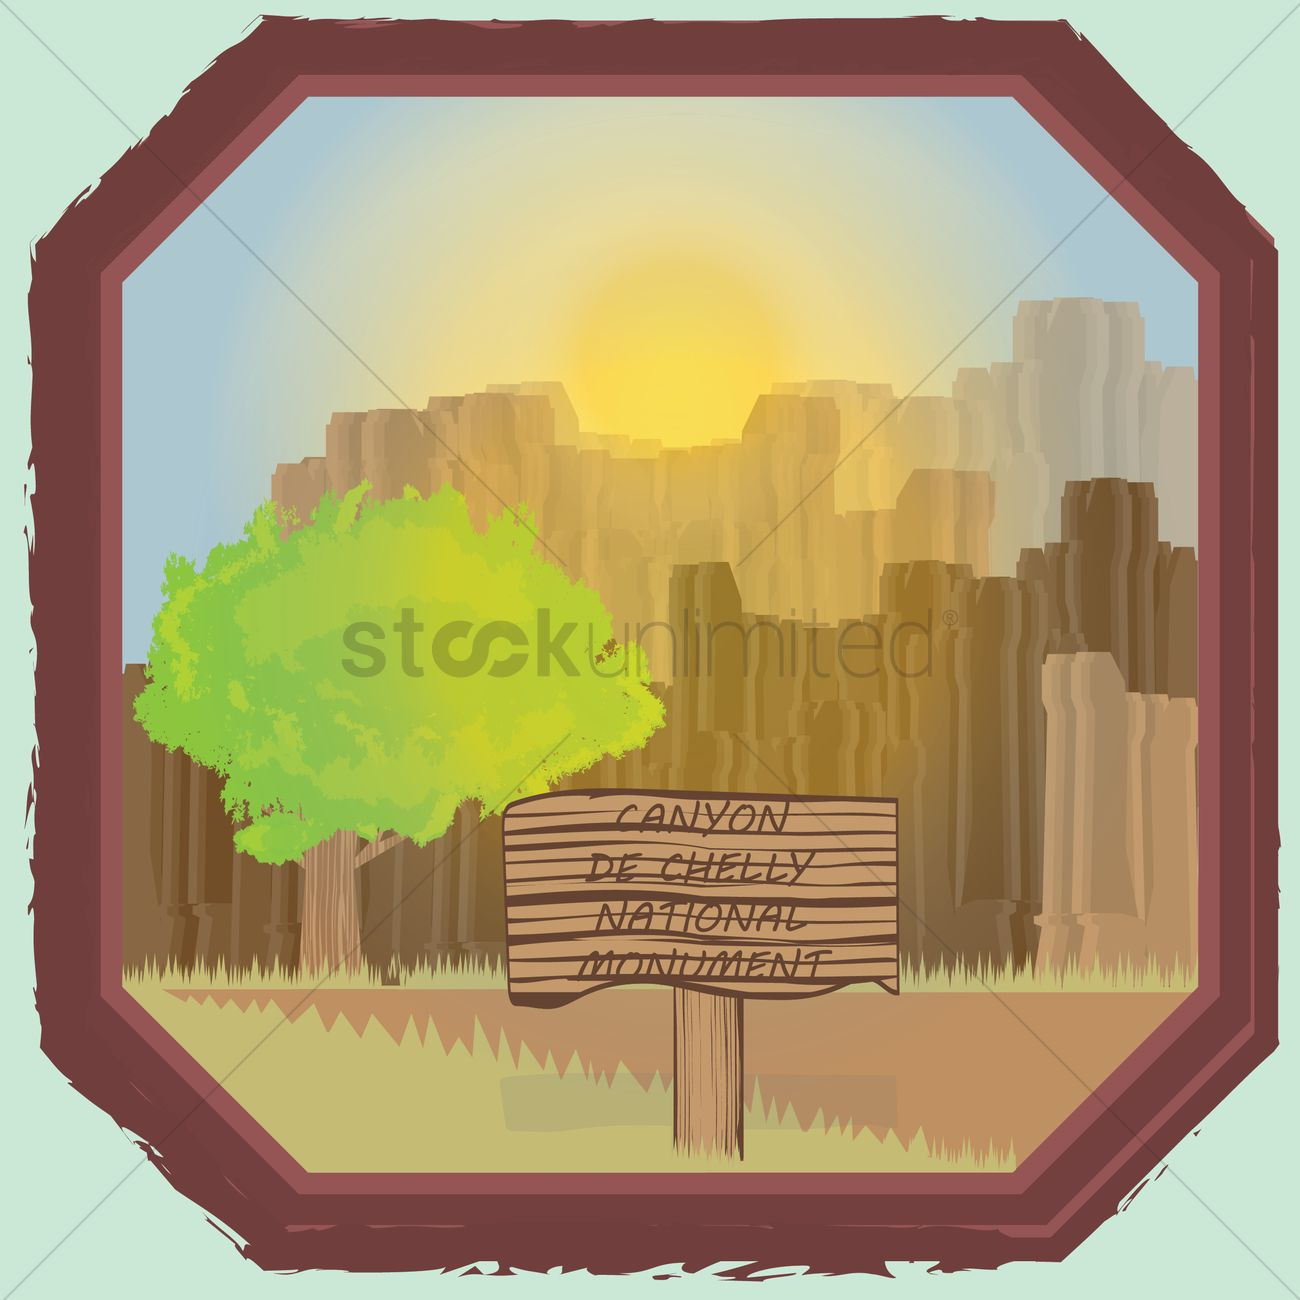 Canyon De Chelly National Monument clipart #6, Download drawings